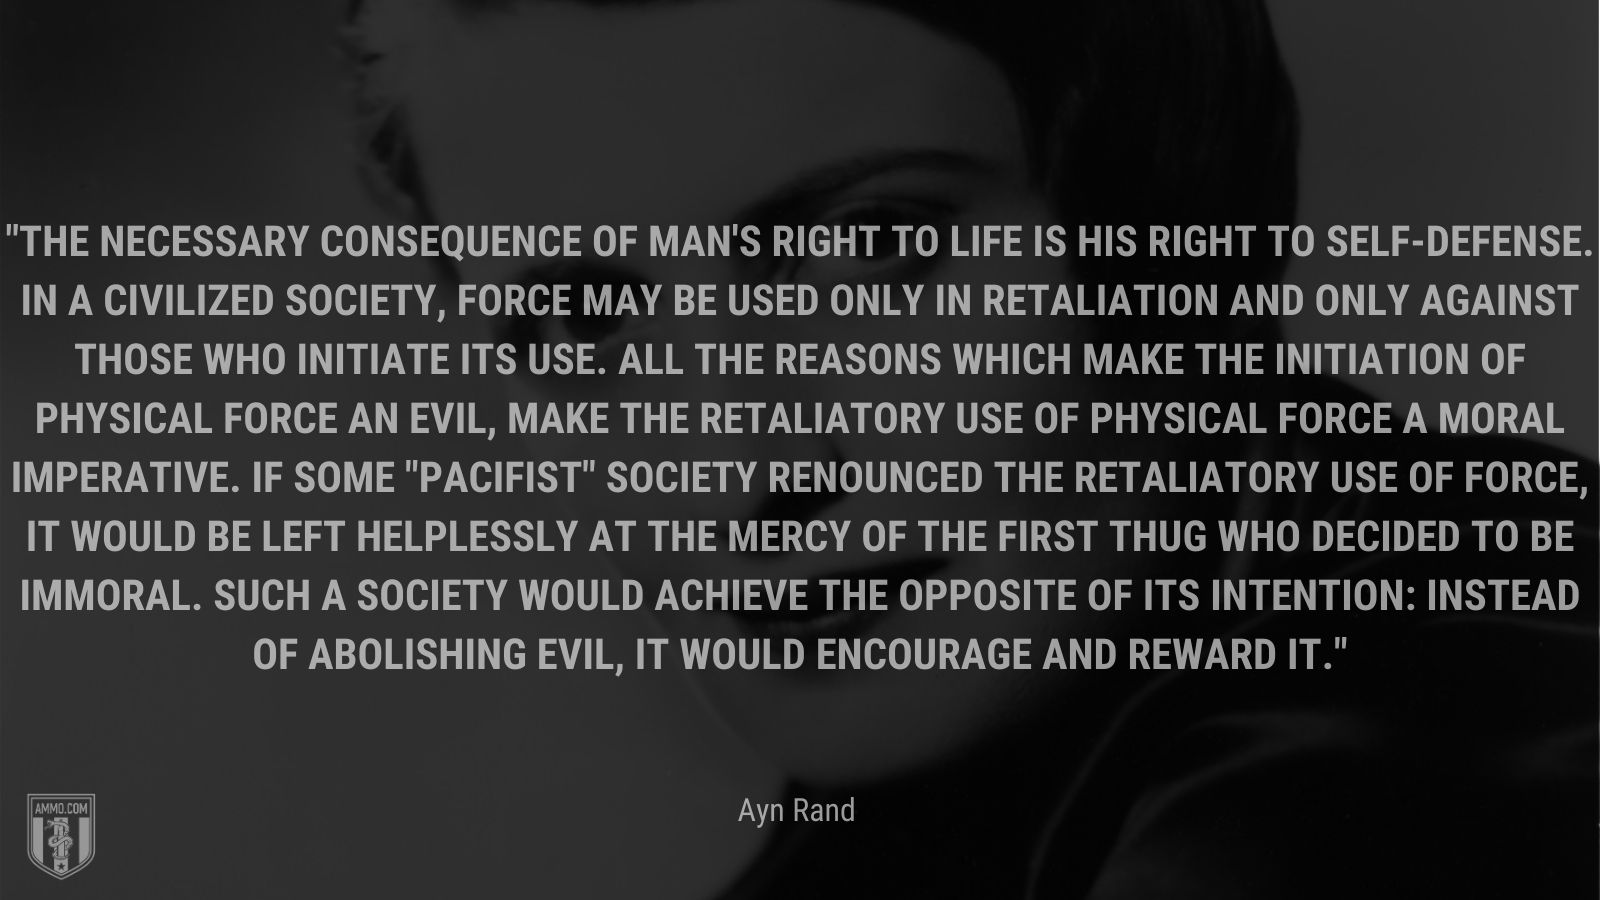 """""""The necessary consequence of man's right to life is his right to self-defense. In a civilized society, force may be used only in retaliation and only against those who initiate its use. All the reasons which make the initiation of physical force an evil, make the retaliatory use of physical force a moral imperative. If some"""